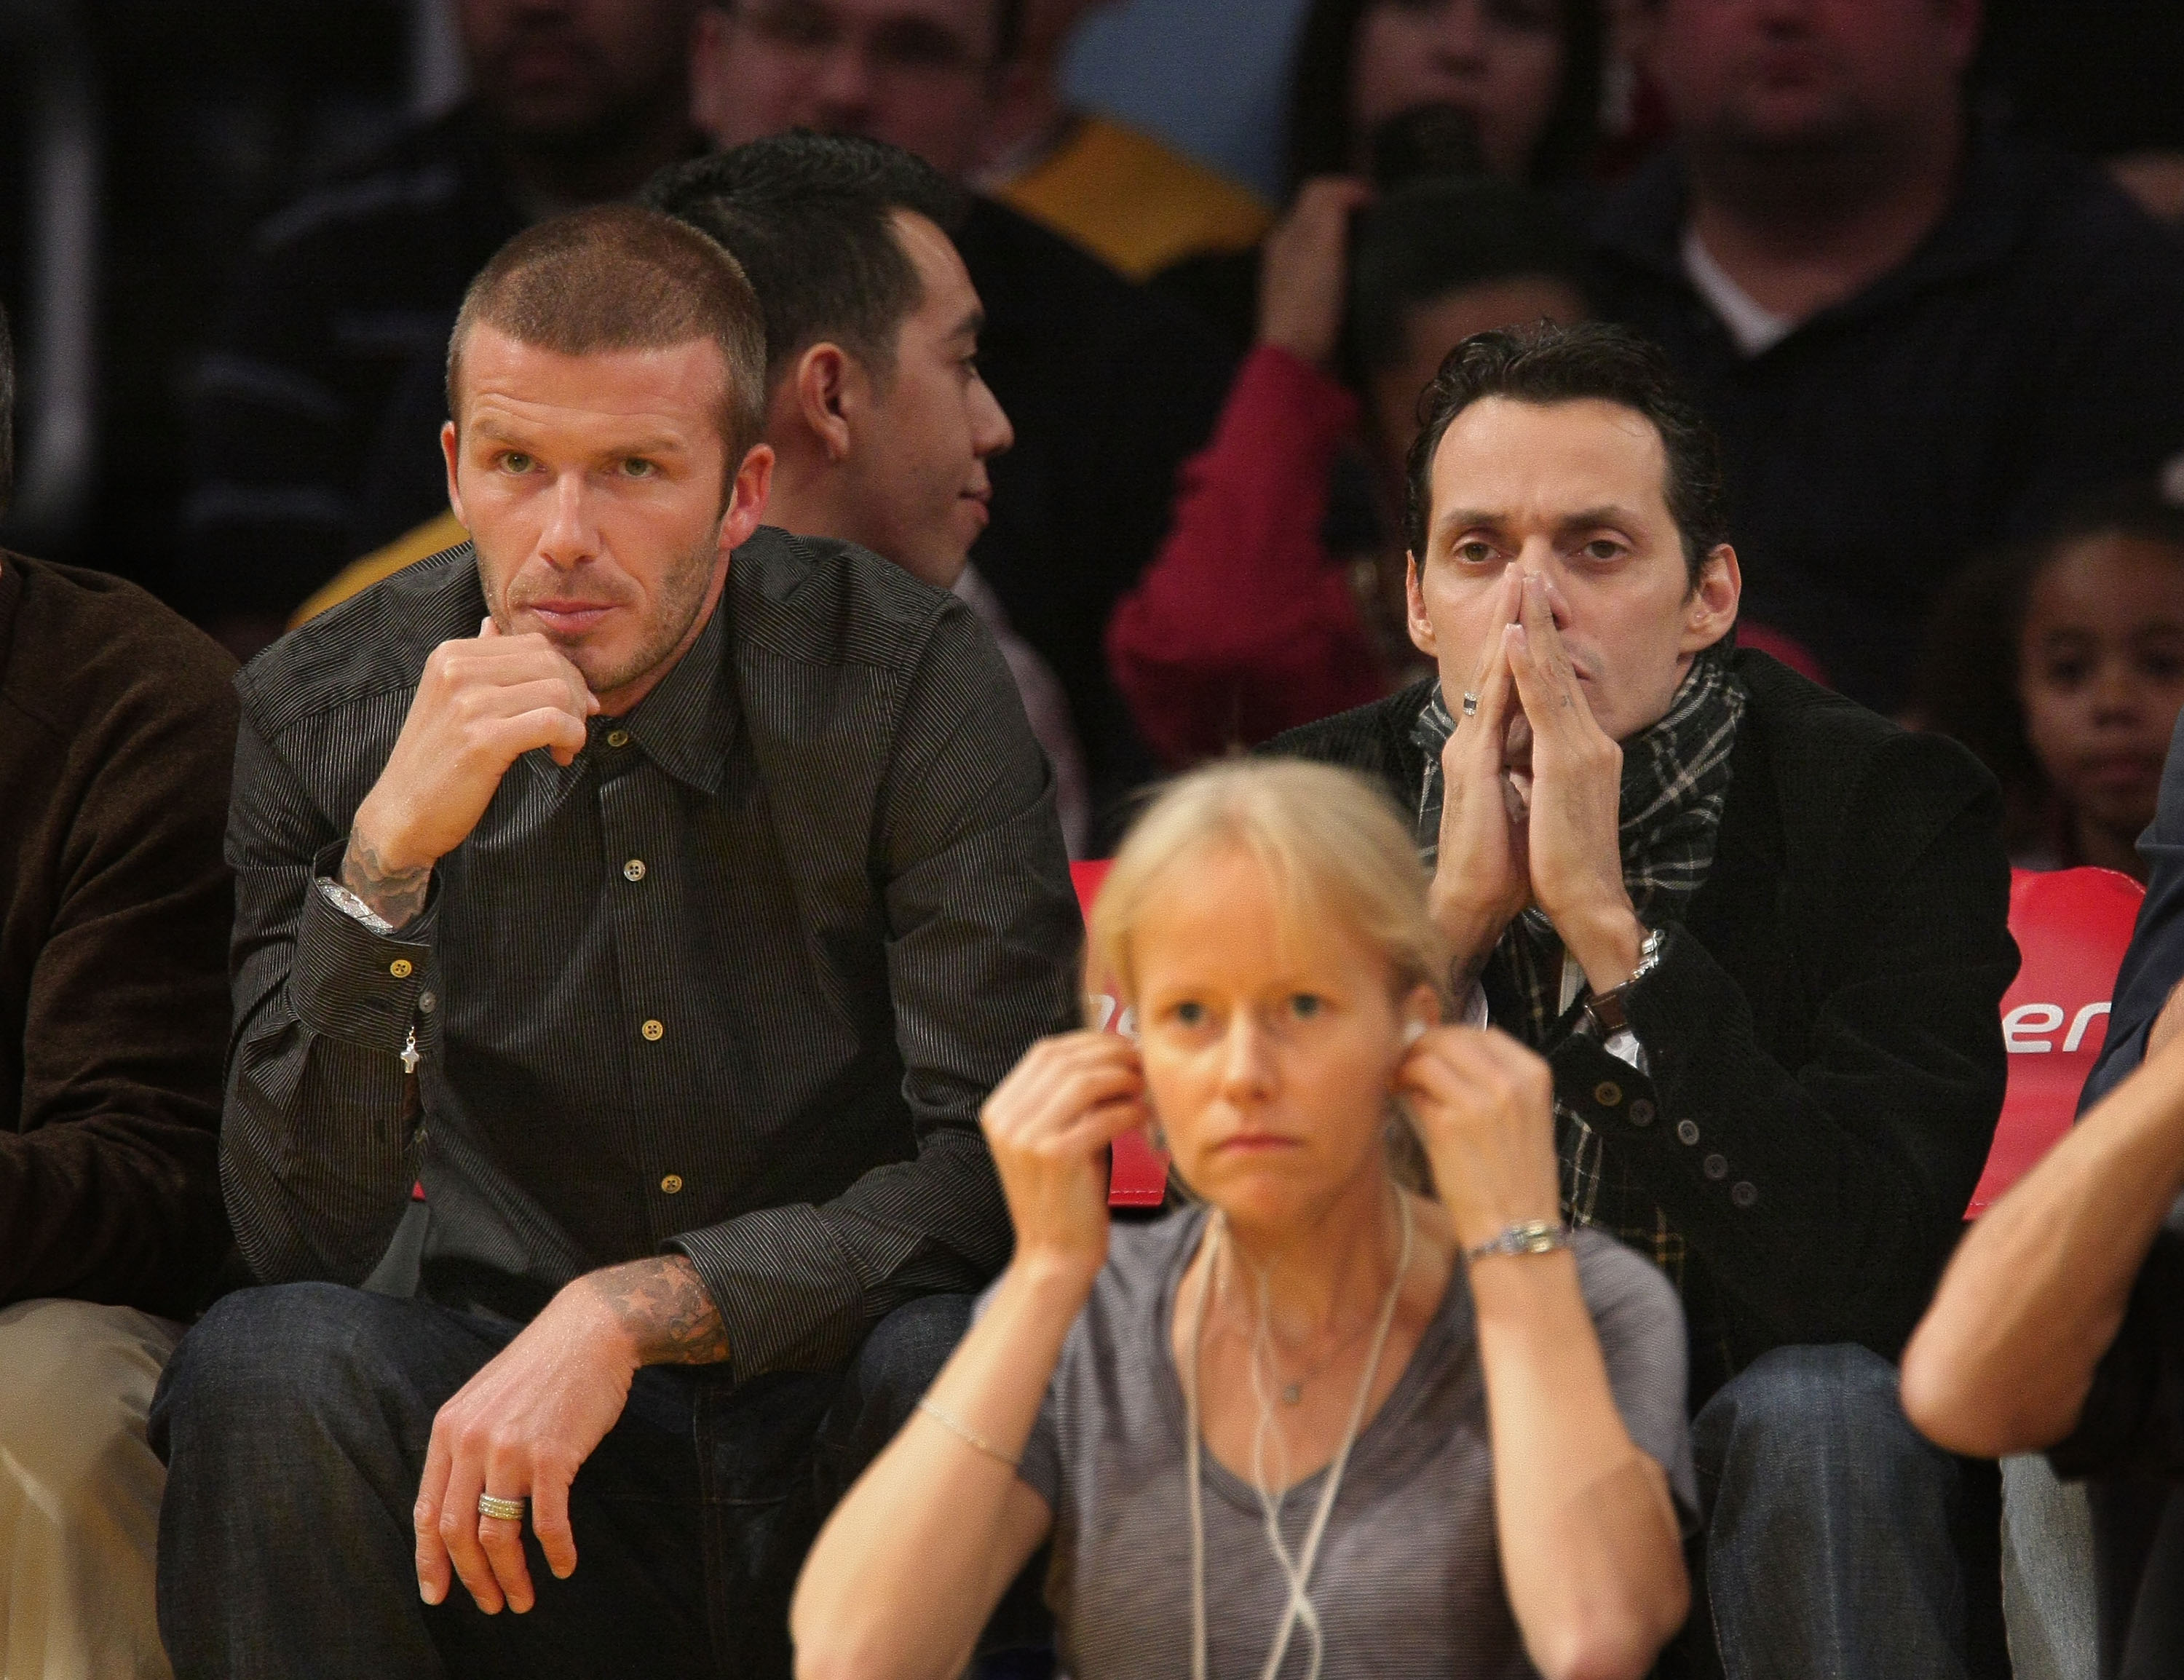 Lakers Game Kate Hudson and Dax Shepard